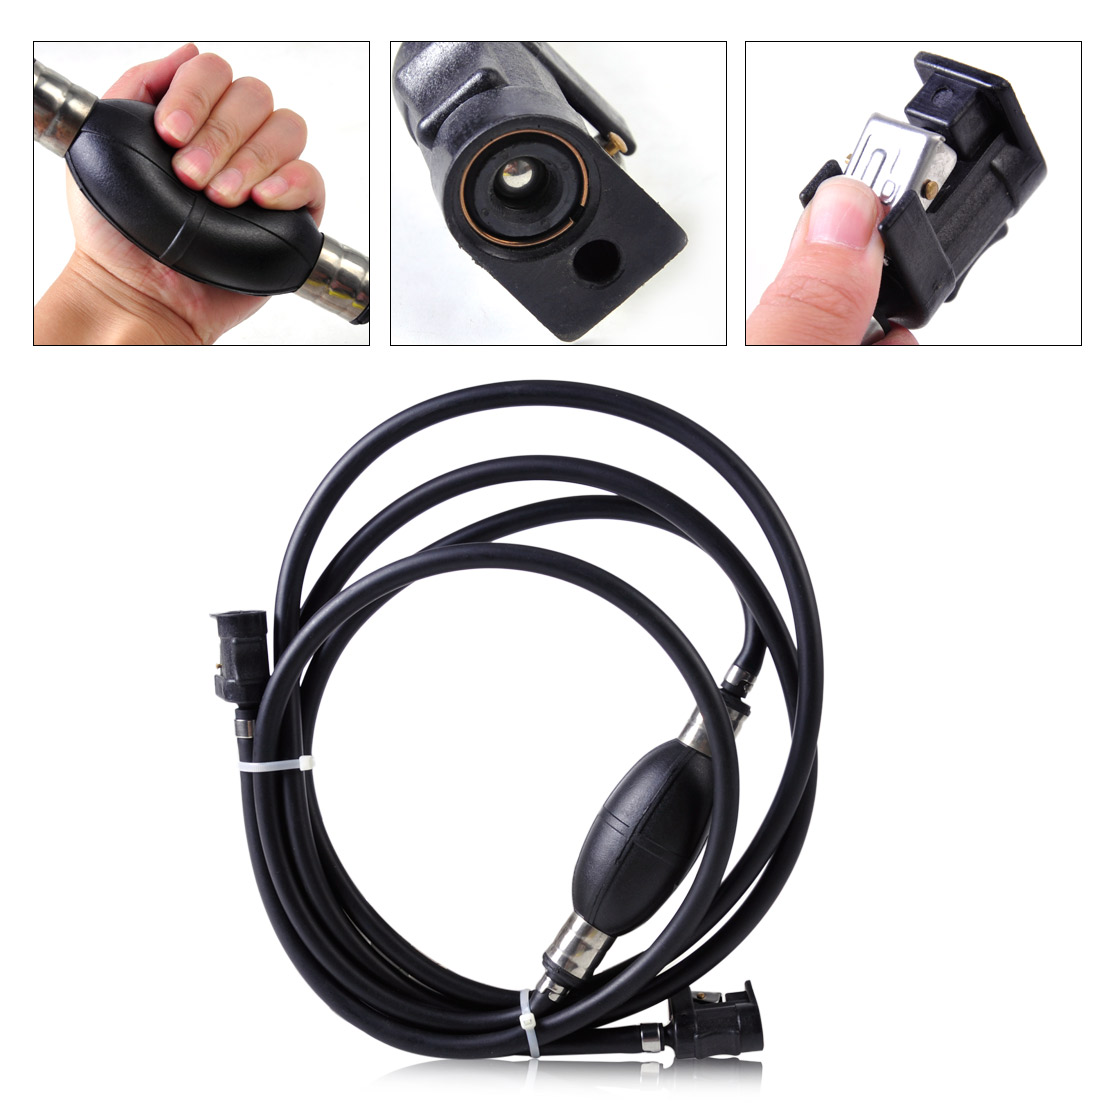 small resolution of dwcx motor 6mm black fuel line hose boat primer bulb kit assembly outboard tank connectors for yamaha mariner johnson mercury in pumps from automobiles